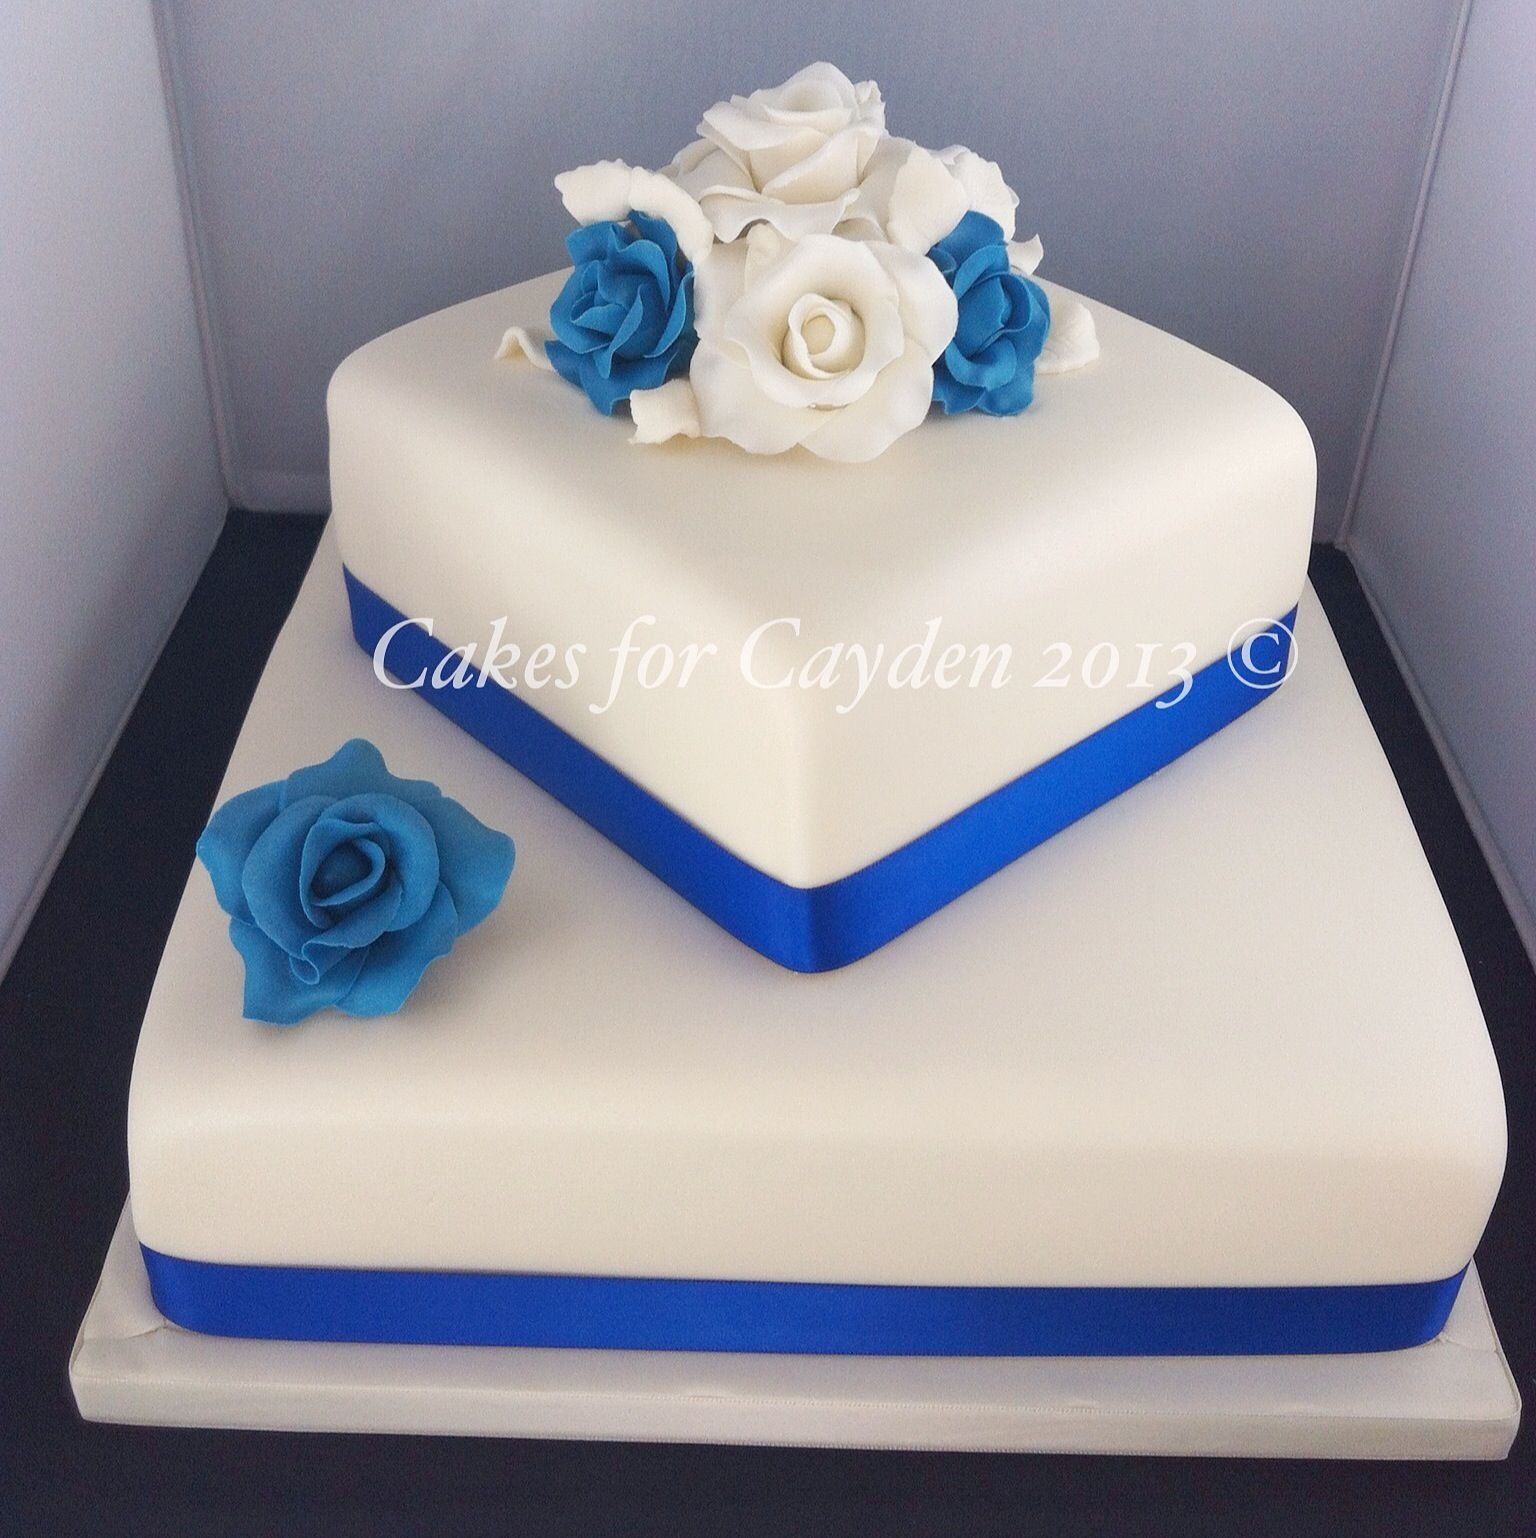 Cool Simple Wedding Cakes Huge Naked Wedding Cake Flat Two Tier Wedding Cake Mini Wedding Cakes Youthful Wedding Cake Drawing PinkHow Much Is A Wedding Cake 2 Tier Square Ivory And Royal Blues Wedding Cake With Hand Made ..